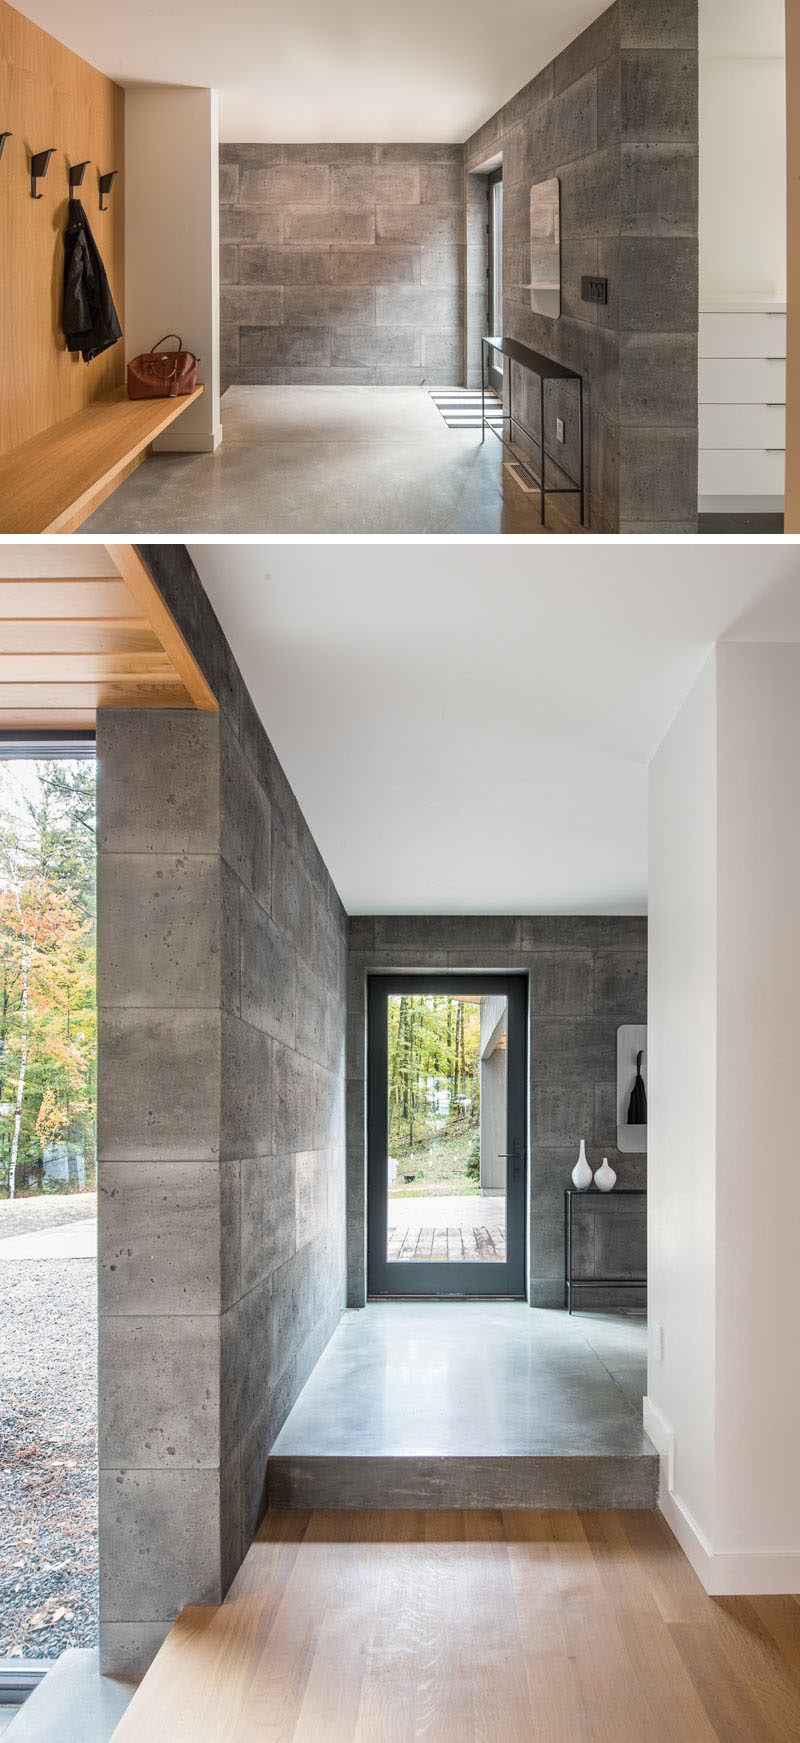 A glass front door welcomes you to this modern house and once inside there's a dedicated space for hanging jackets and putting on shoes. A couple of steps lead to the main living area of the house. #GlassFrontDoor #Entryway